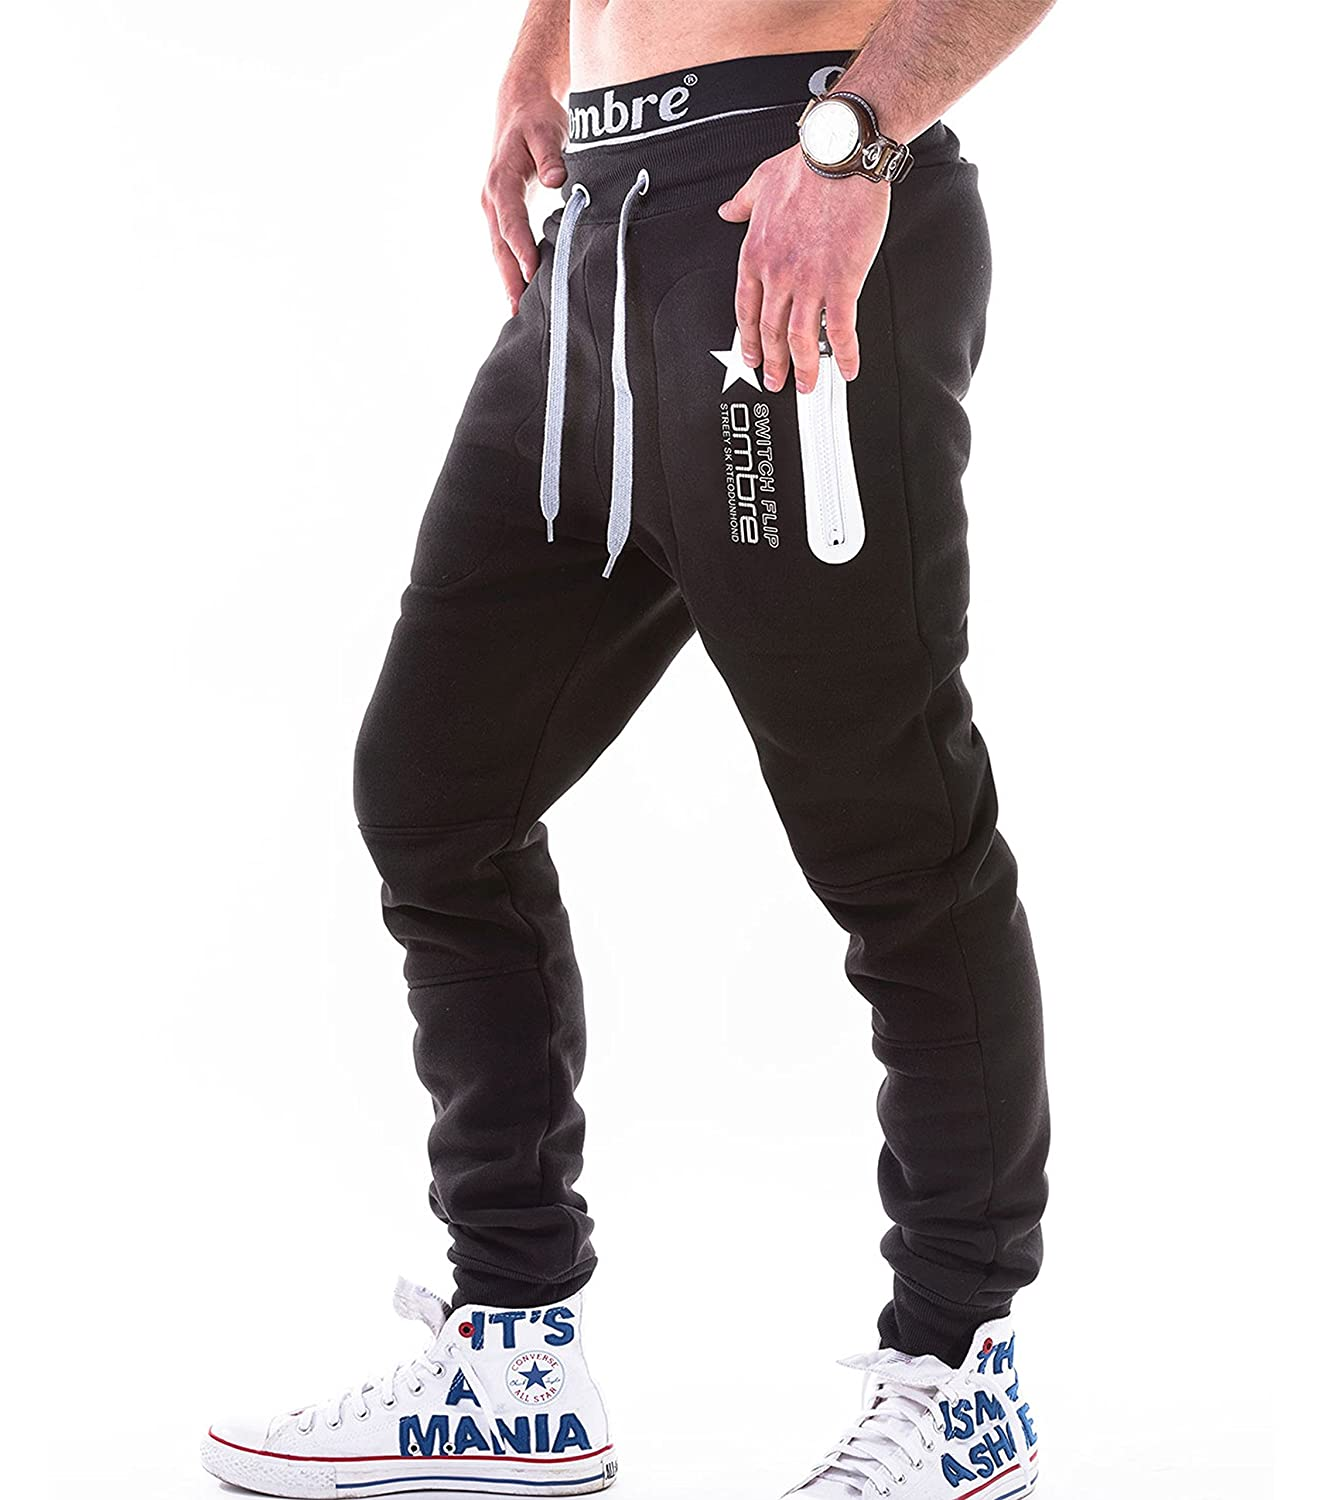 2d43a0cd BetterStylz Switch Mens Casual Joggers Track Pants Jogging Sweatpants Zip  Gym Tracksuit Bottoms 3 Colors (S-XXL) at Amazon Men's Clothing store: